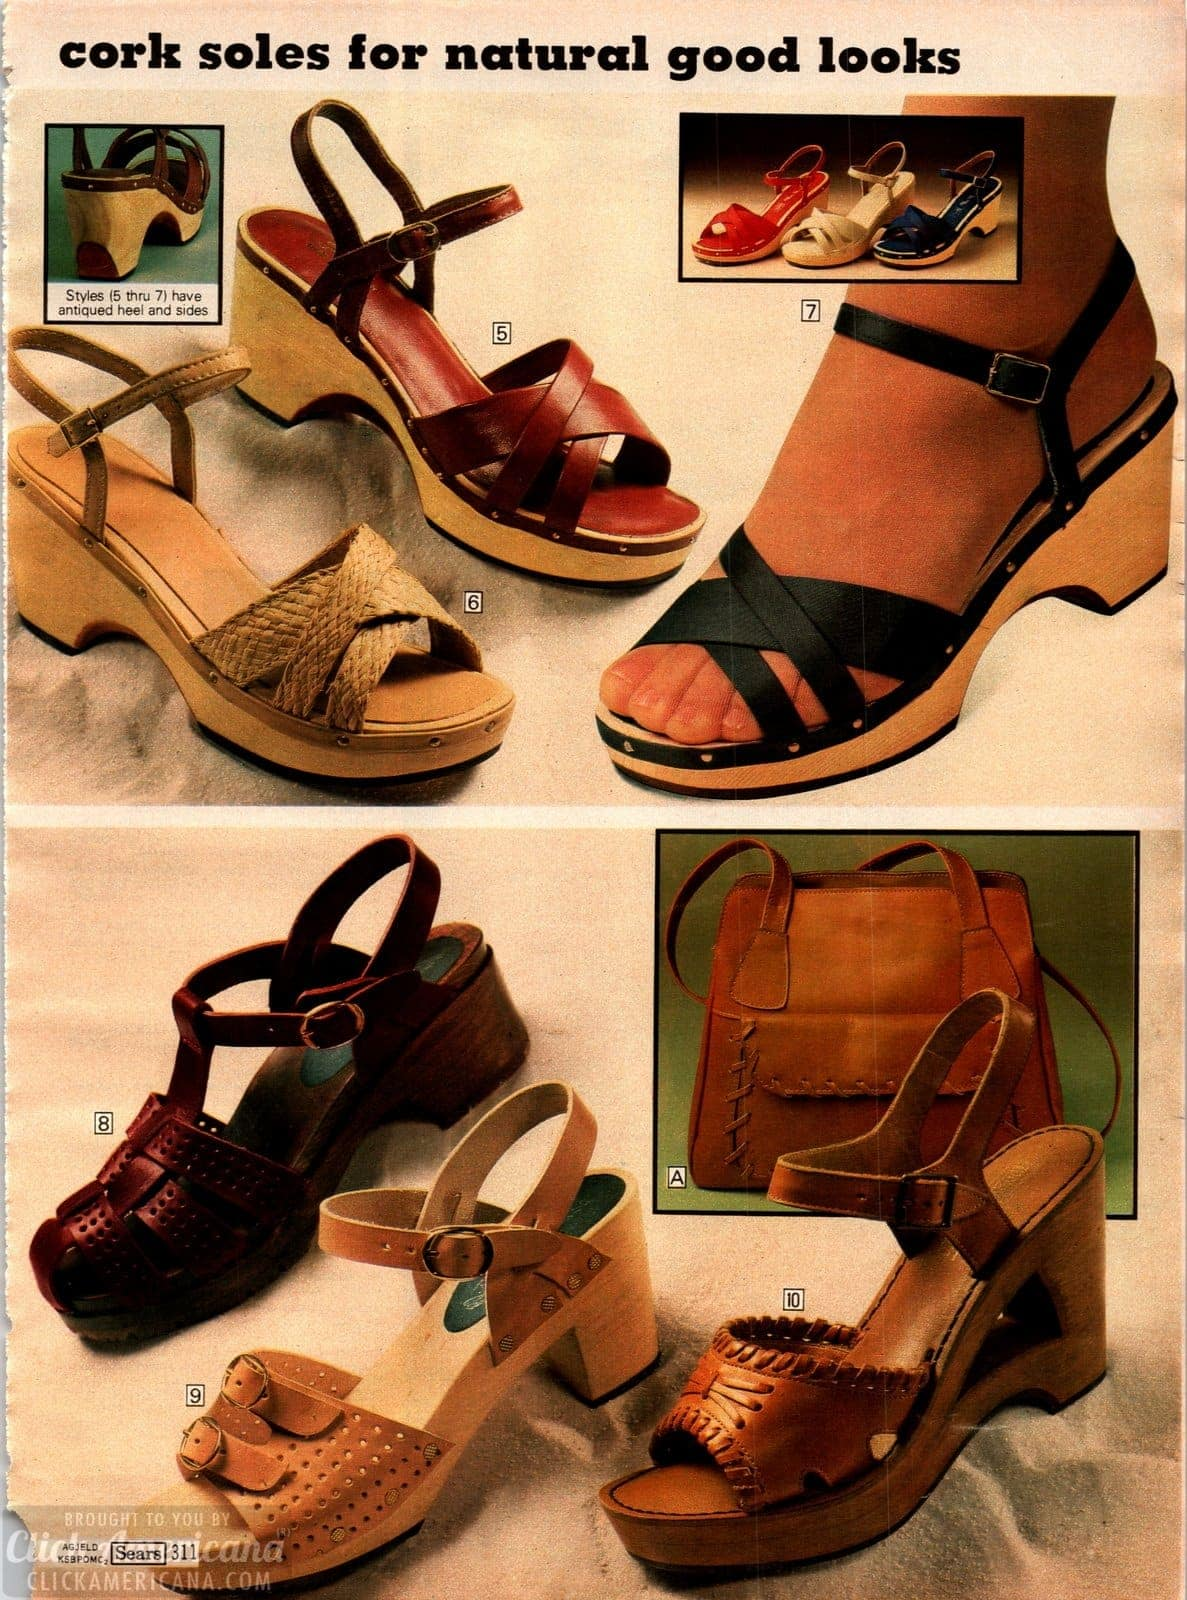 Sandals with cork soles and chunky heels from 1979